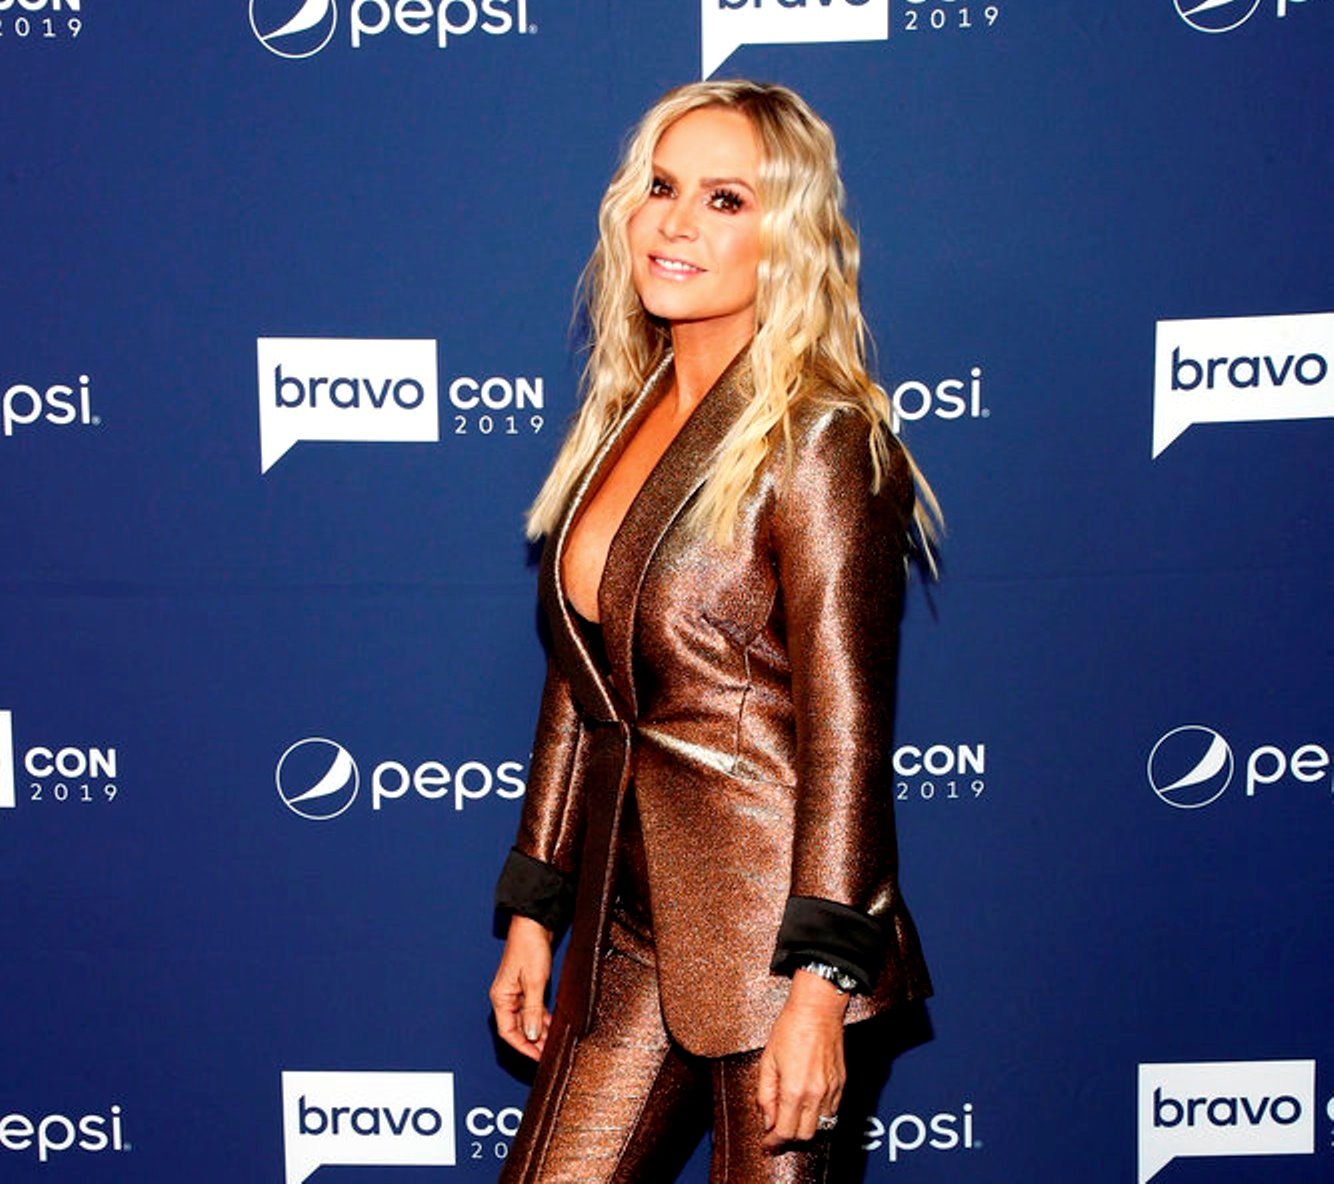 RHOC's Tamra Judge Defends Buying a New Luxury Car After Complaining of $300K Costly Legal Bill Amid Defamation Lawsuit